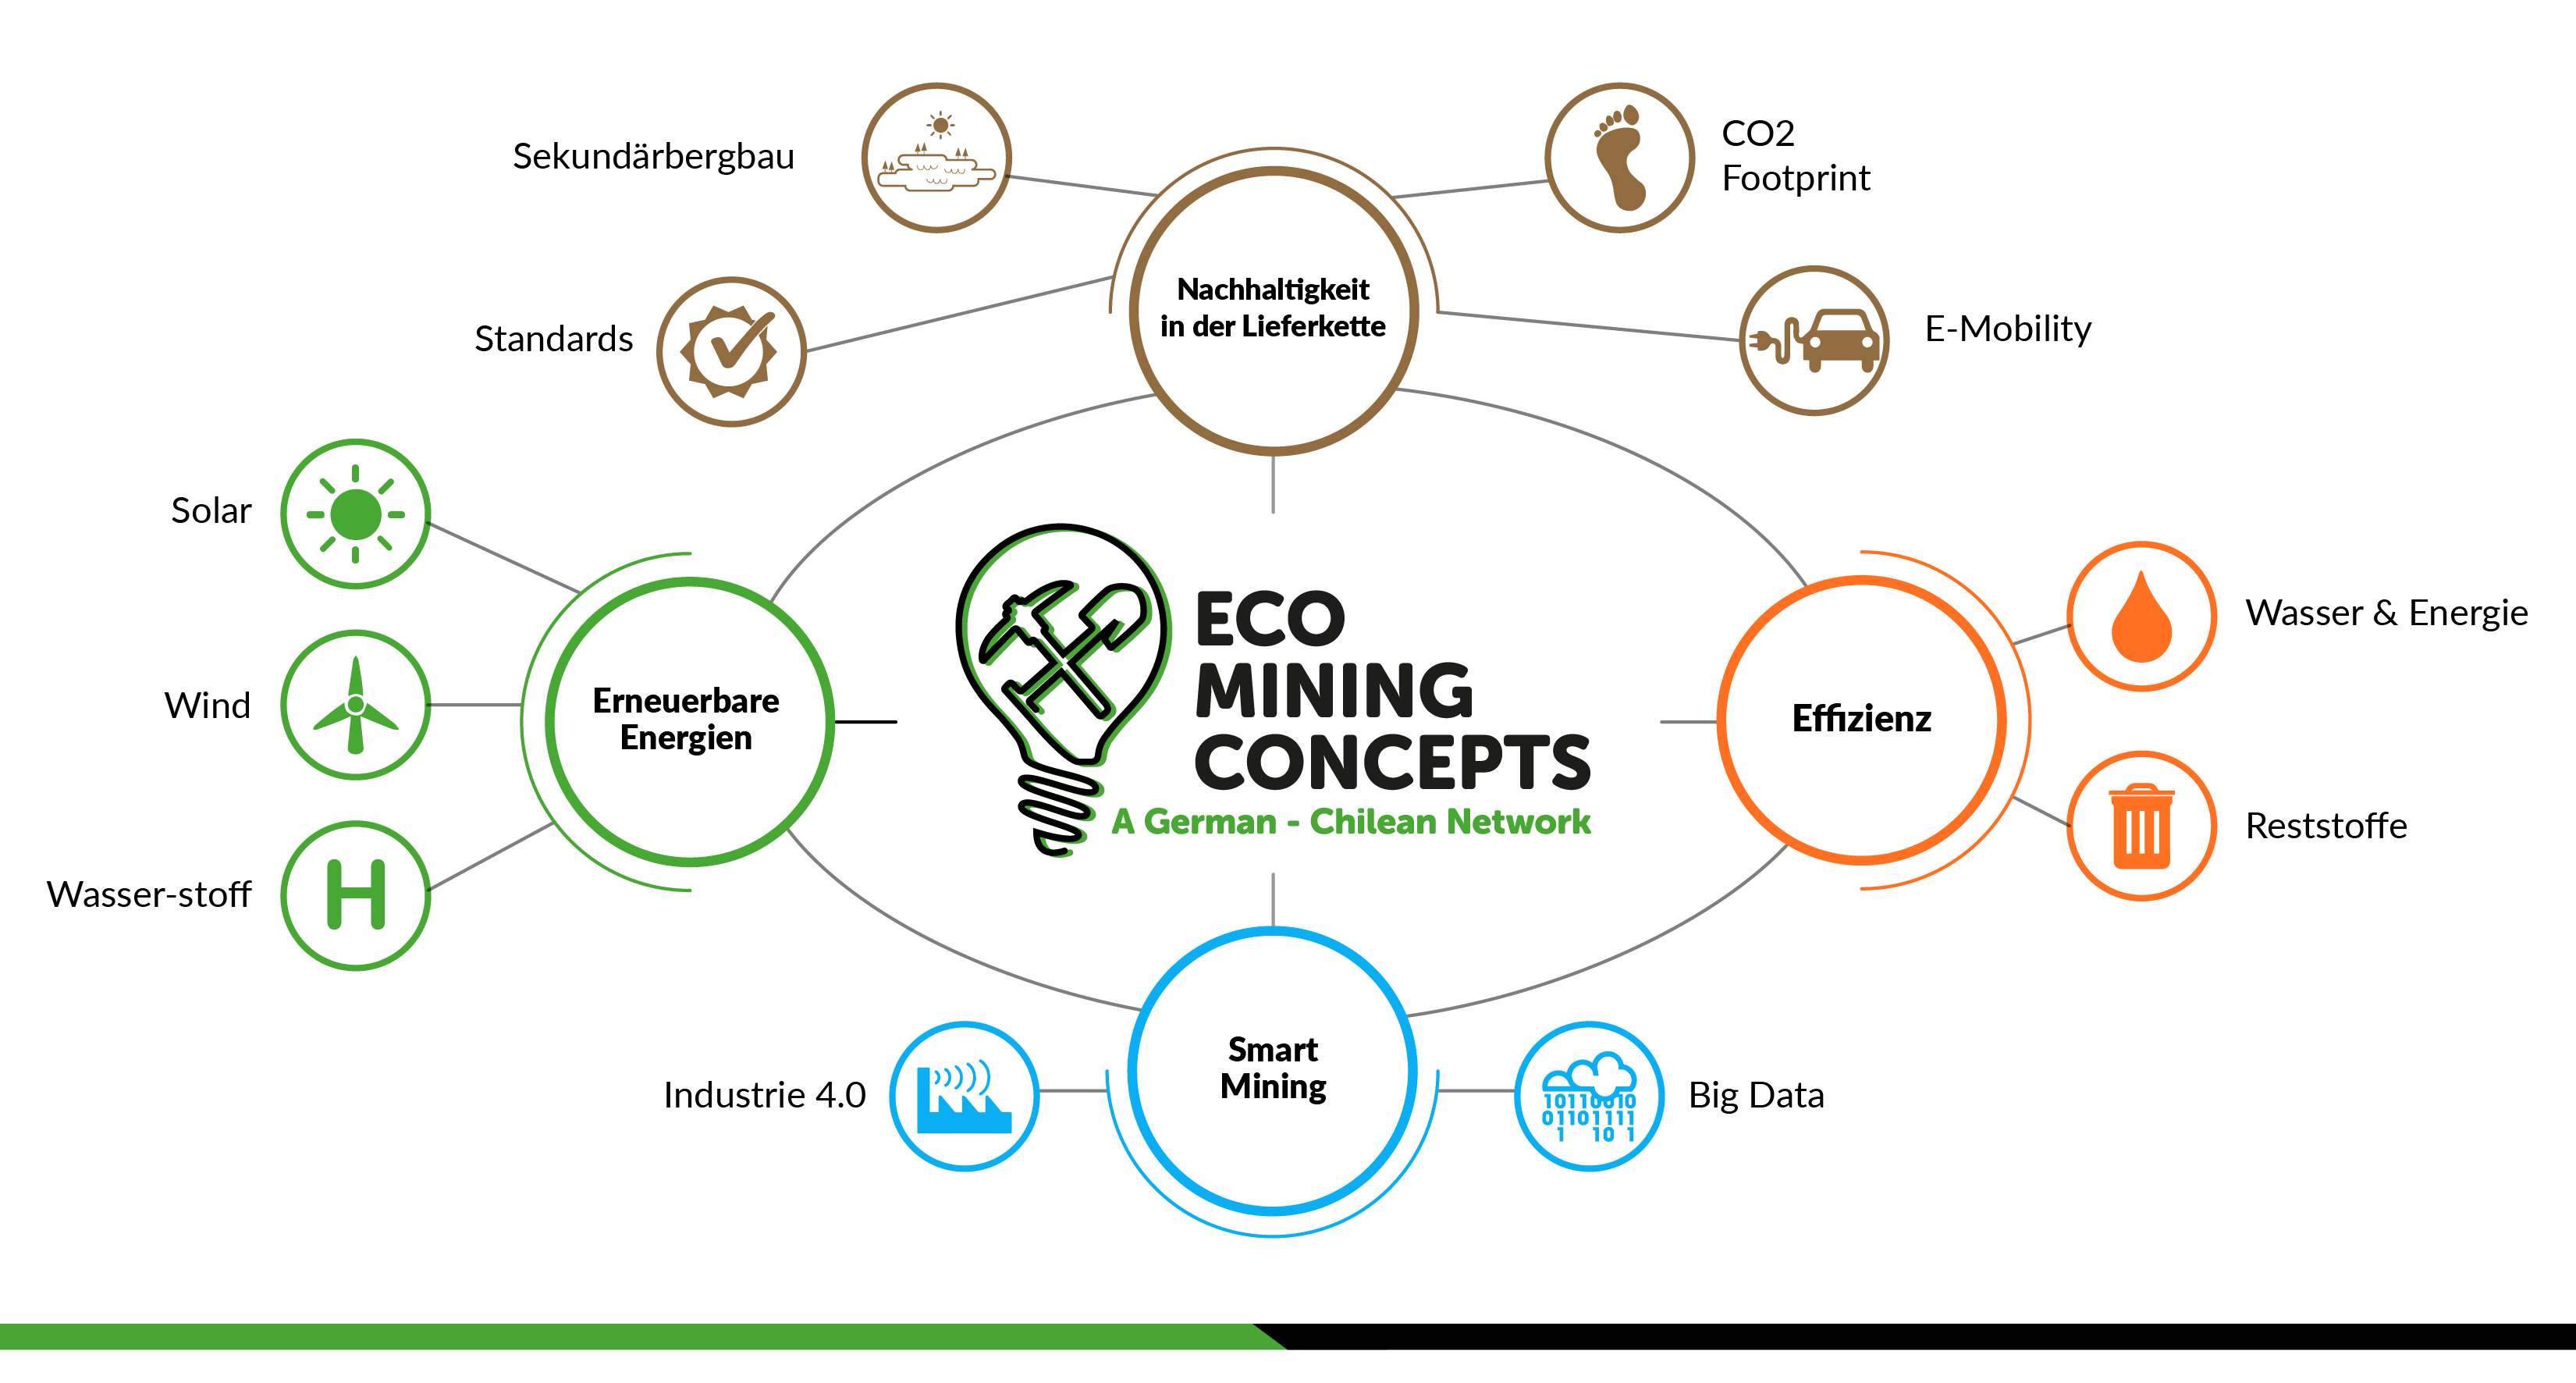 eco-mining-concepts-ahk-chile-header-de